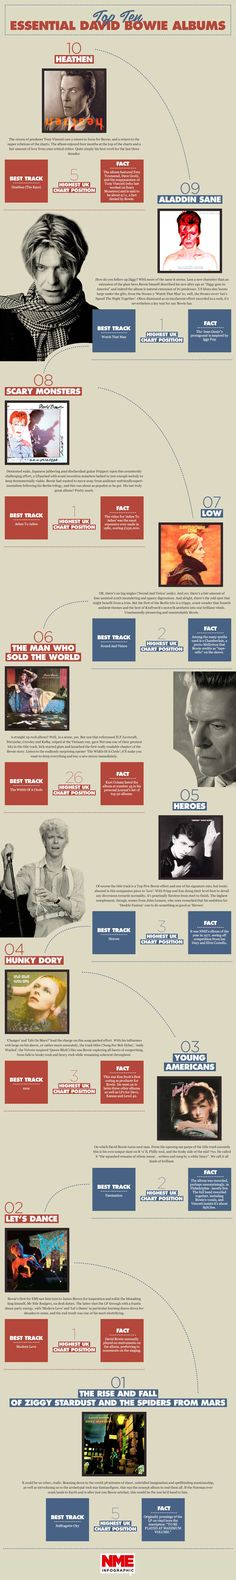 The Top Ten Essential David Bowie Albums - NME Infographics - NME.COM - The world's fastest music news service, music videos, interviews, photos and more